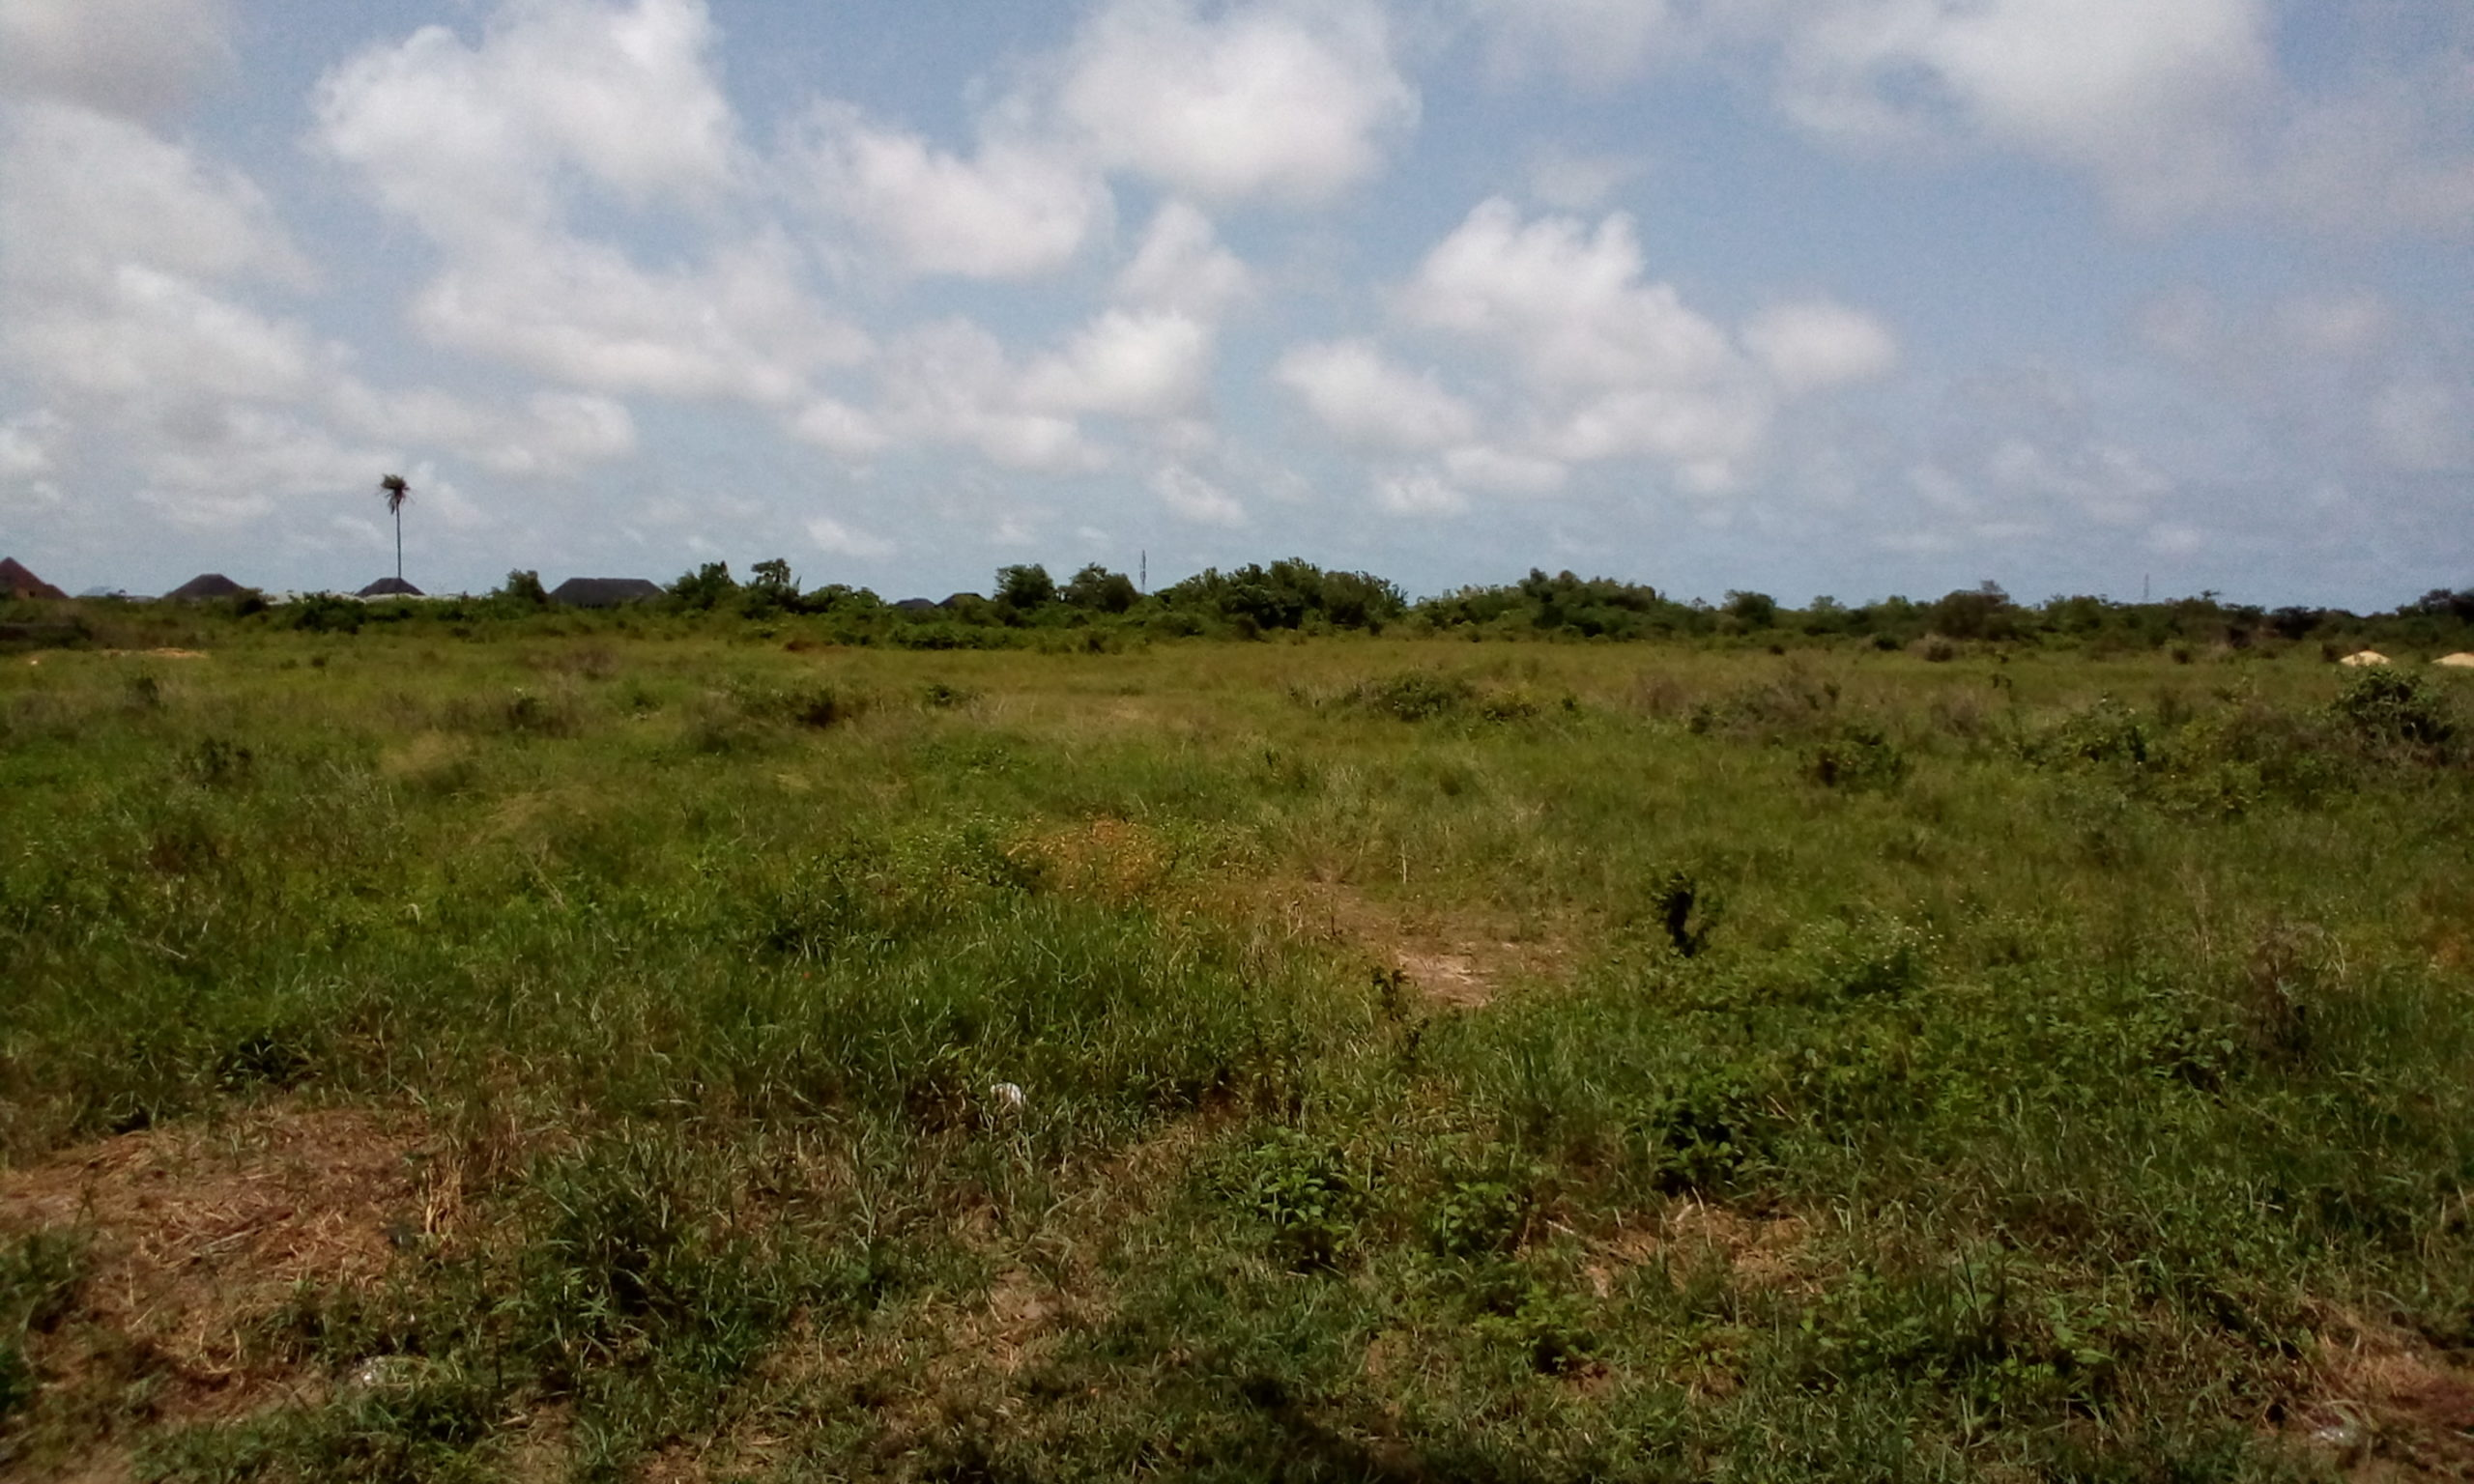 40.816 Hectares of dry land in Lekki Ajah